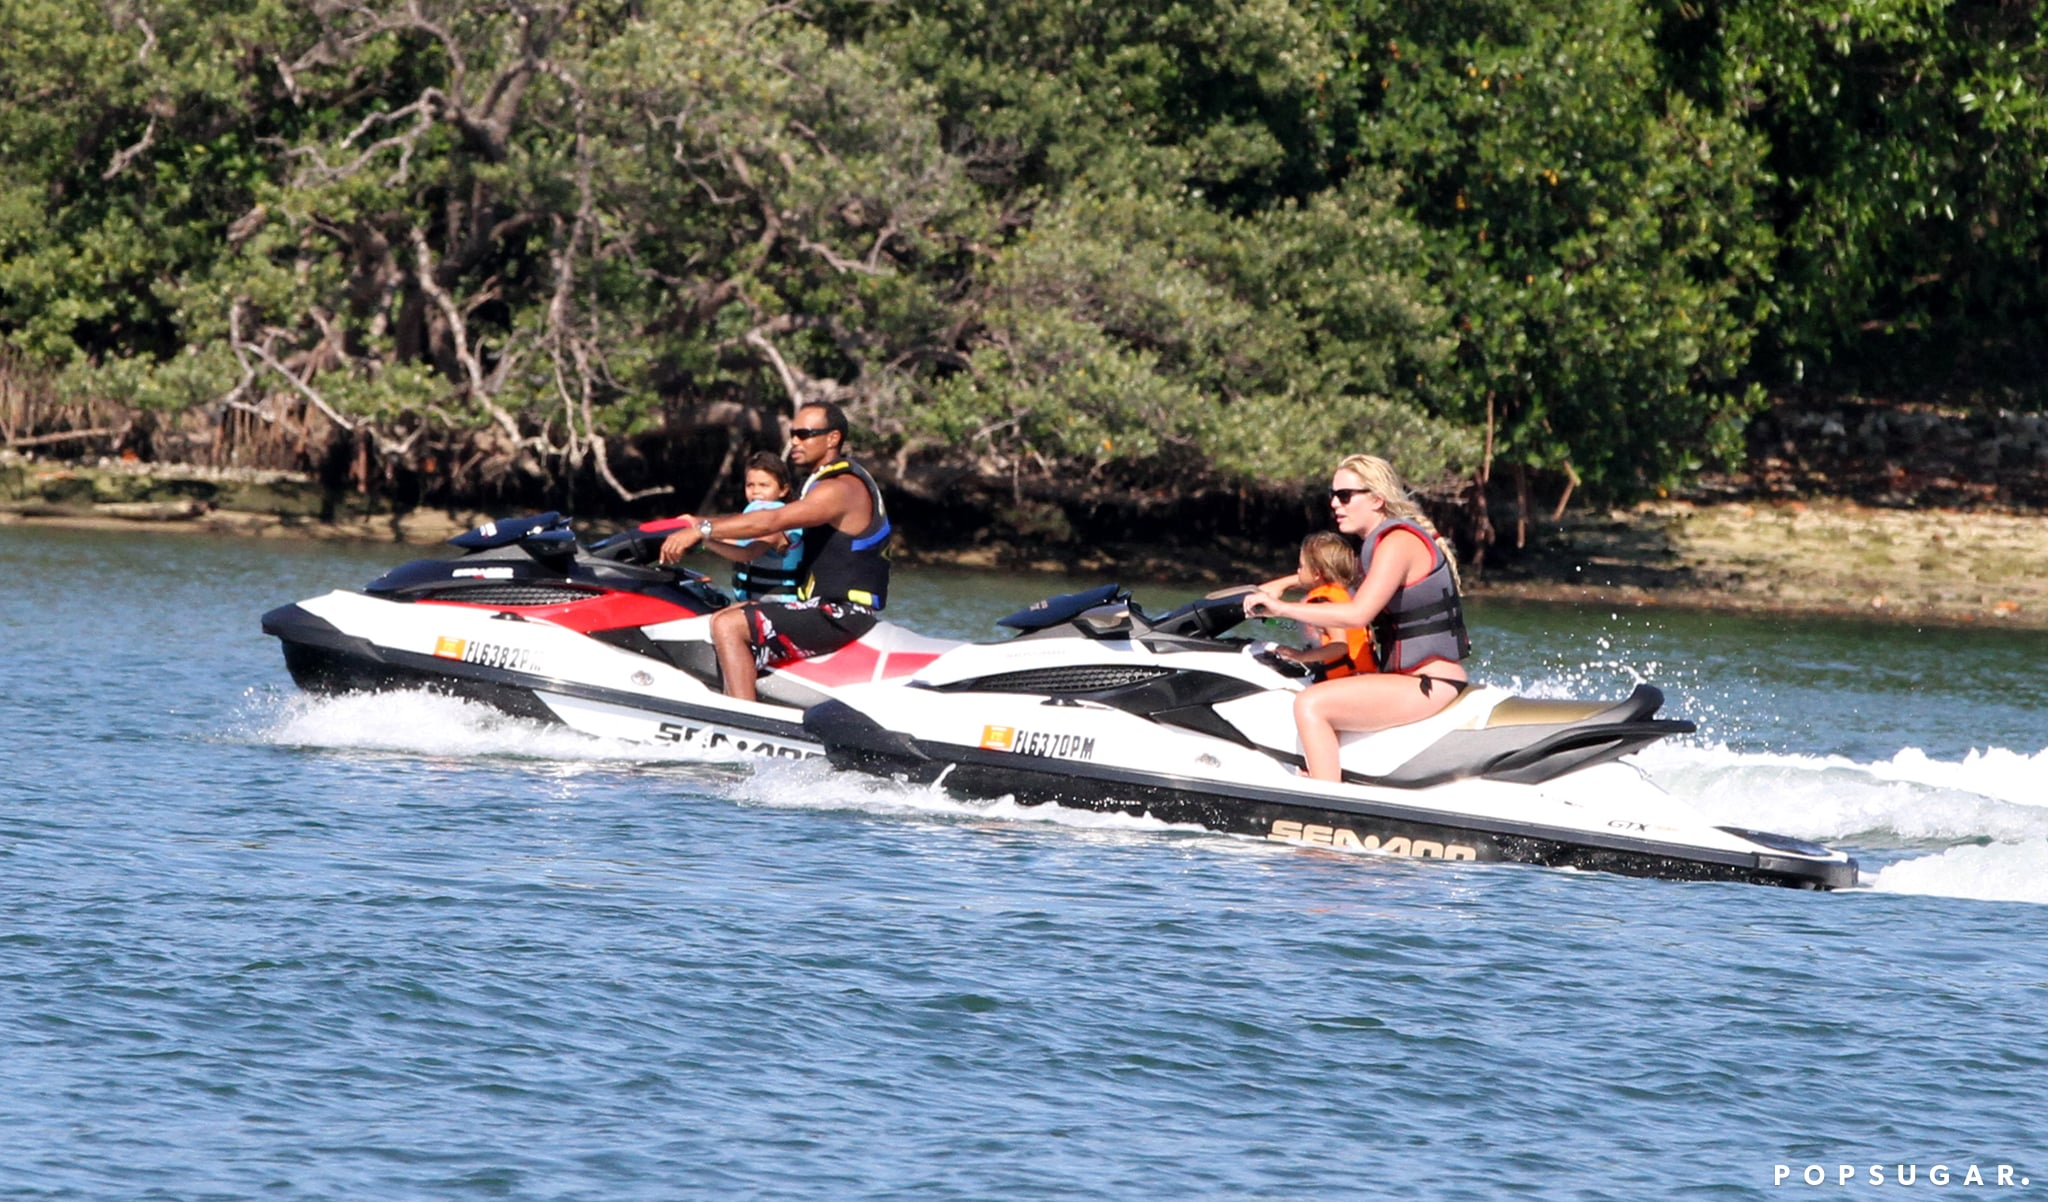 Lindsey Vonn and Tiger Woods took his kids, Sam and Charlie, for a ride on water skis in Palm Beach.